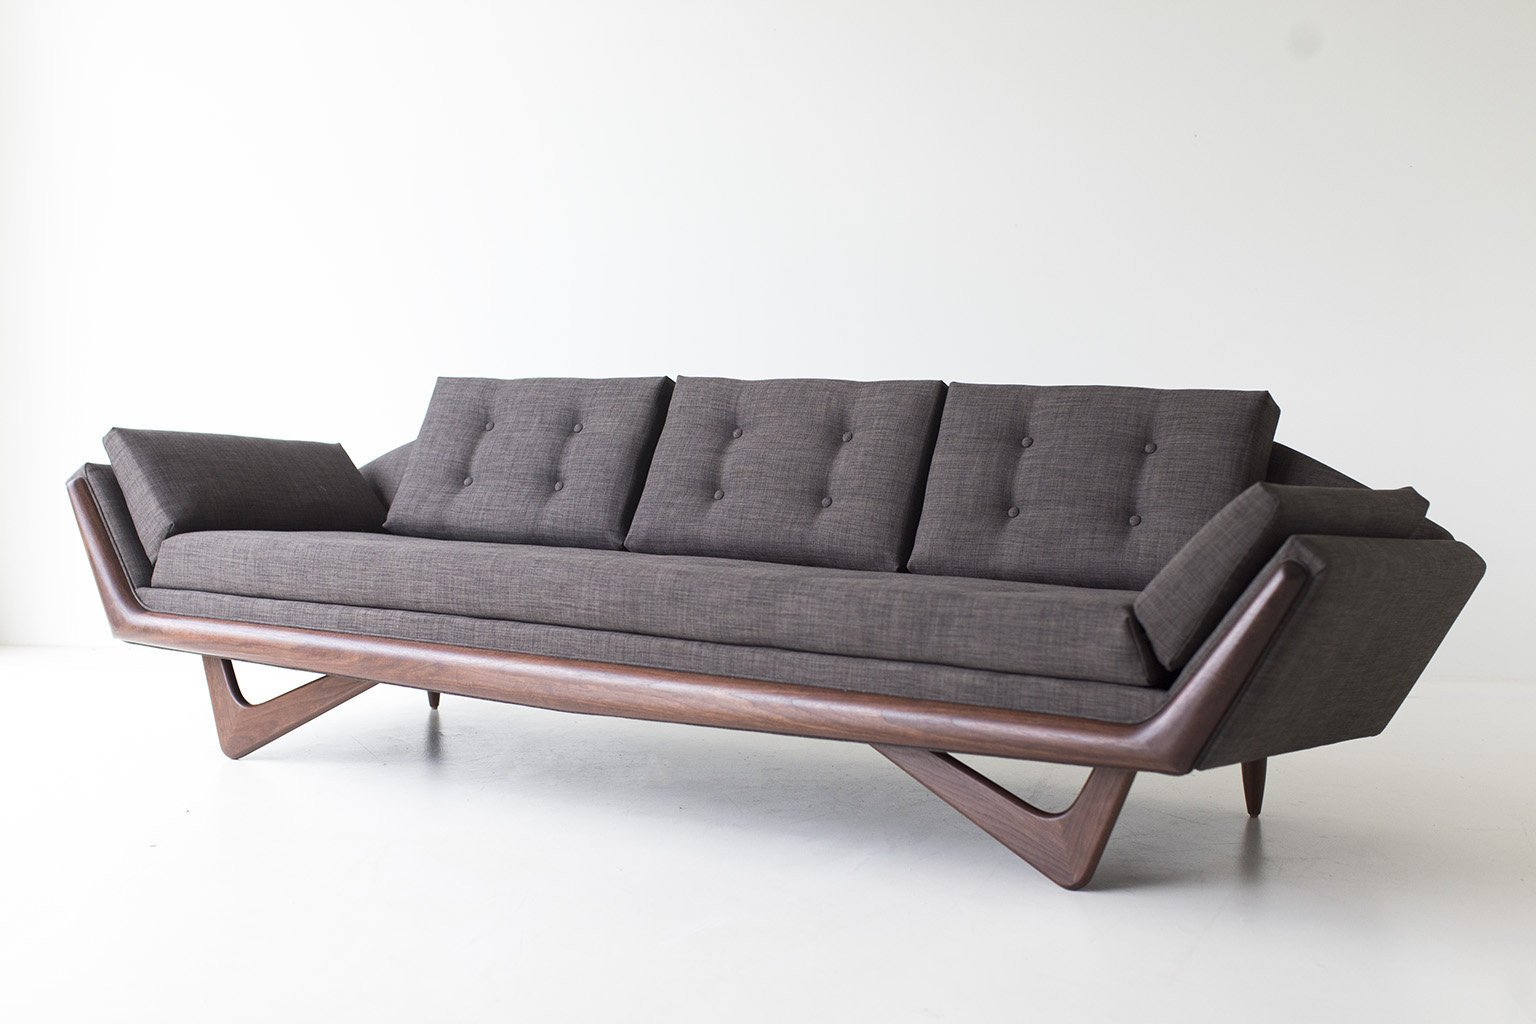 modern-sofa-craft-associates-modern-jetson-sofa-1404-01.jpg